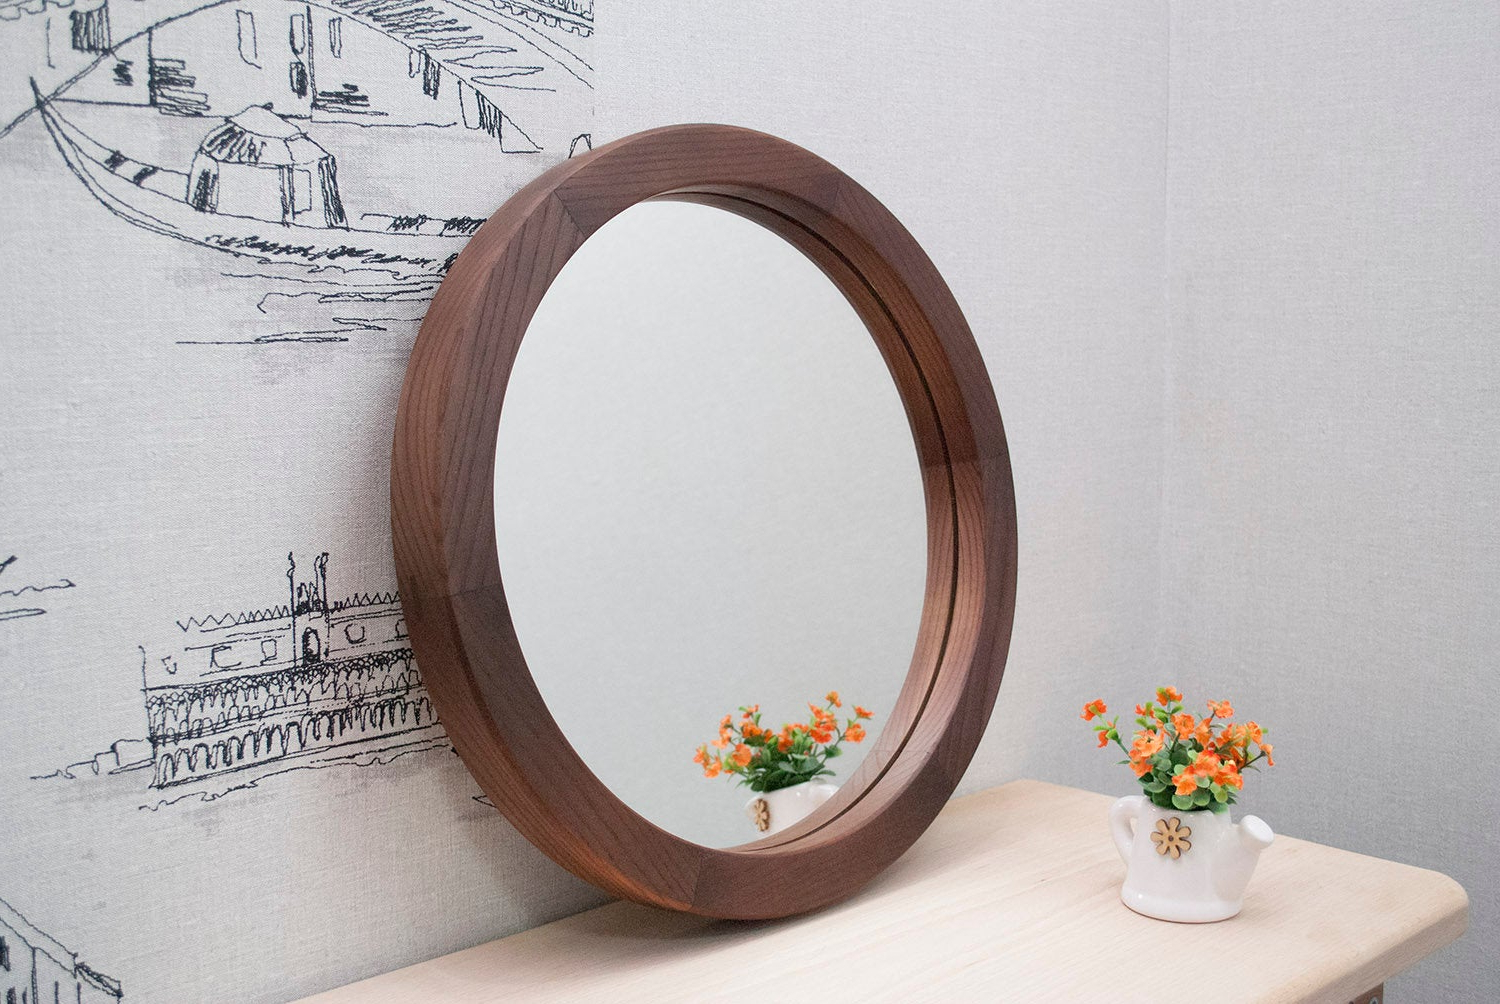 Well Known Round Wood Mirror, Round Decorative Wall Mirror, Ash Brown Wood Mirror Frame, Wall Mirror, Wall Decor, Round Framed Wall Mount Mirror Inside Round Wood Wall Mirrors (View 20 of 20)